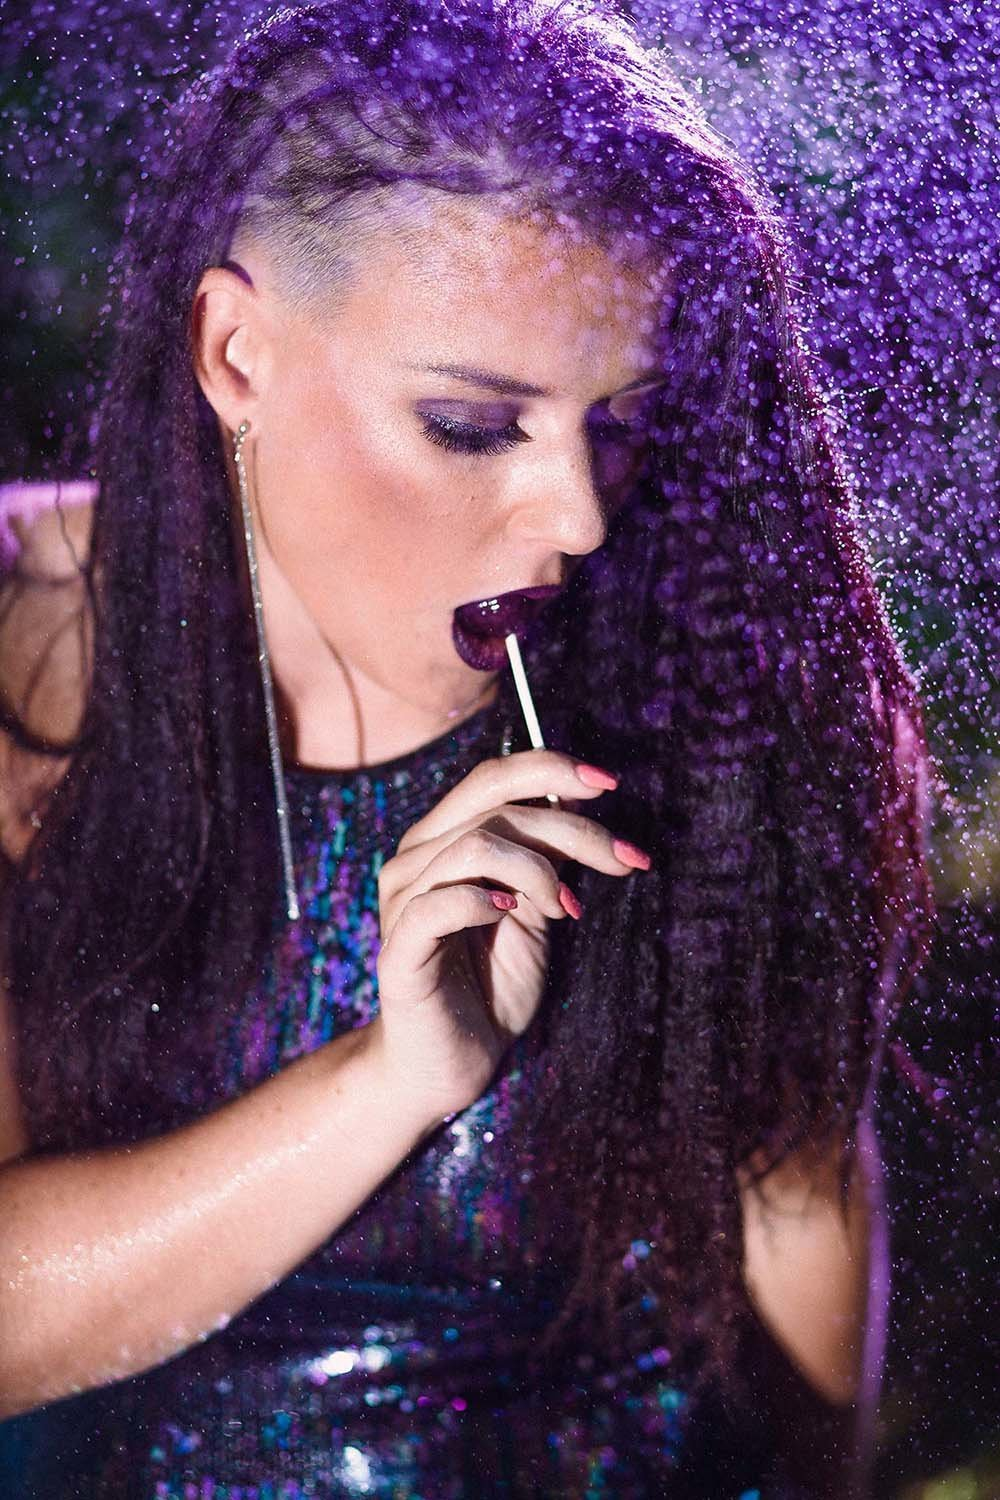 prince-inspired-purple-rain-photoshoot-jacksonville-fl-breaking-tradition-photography